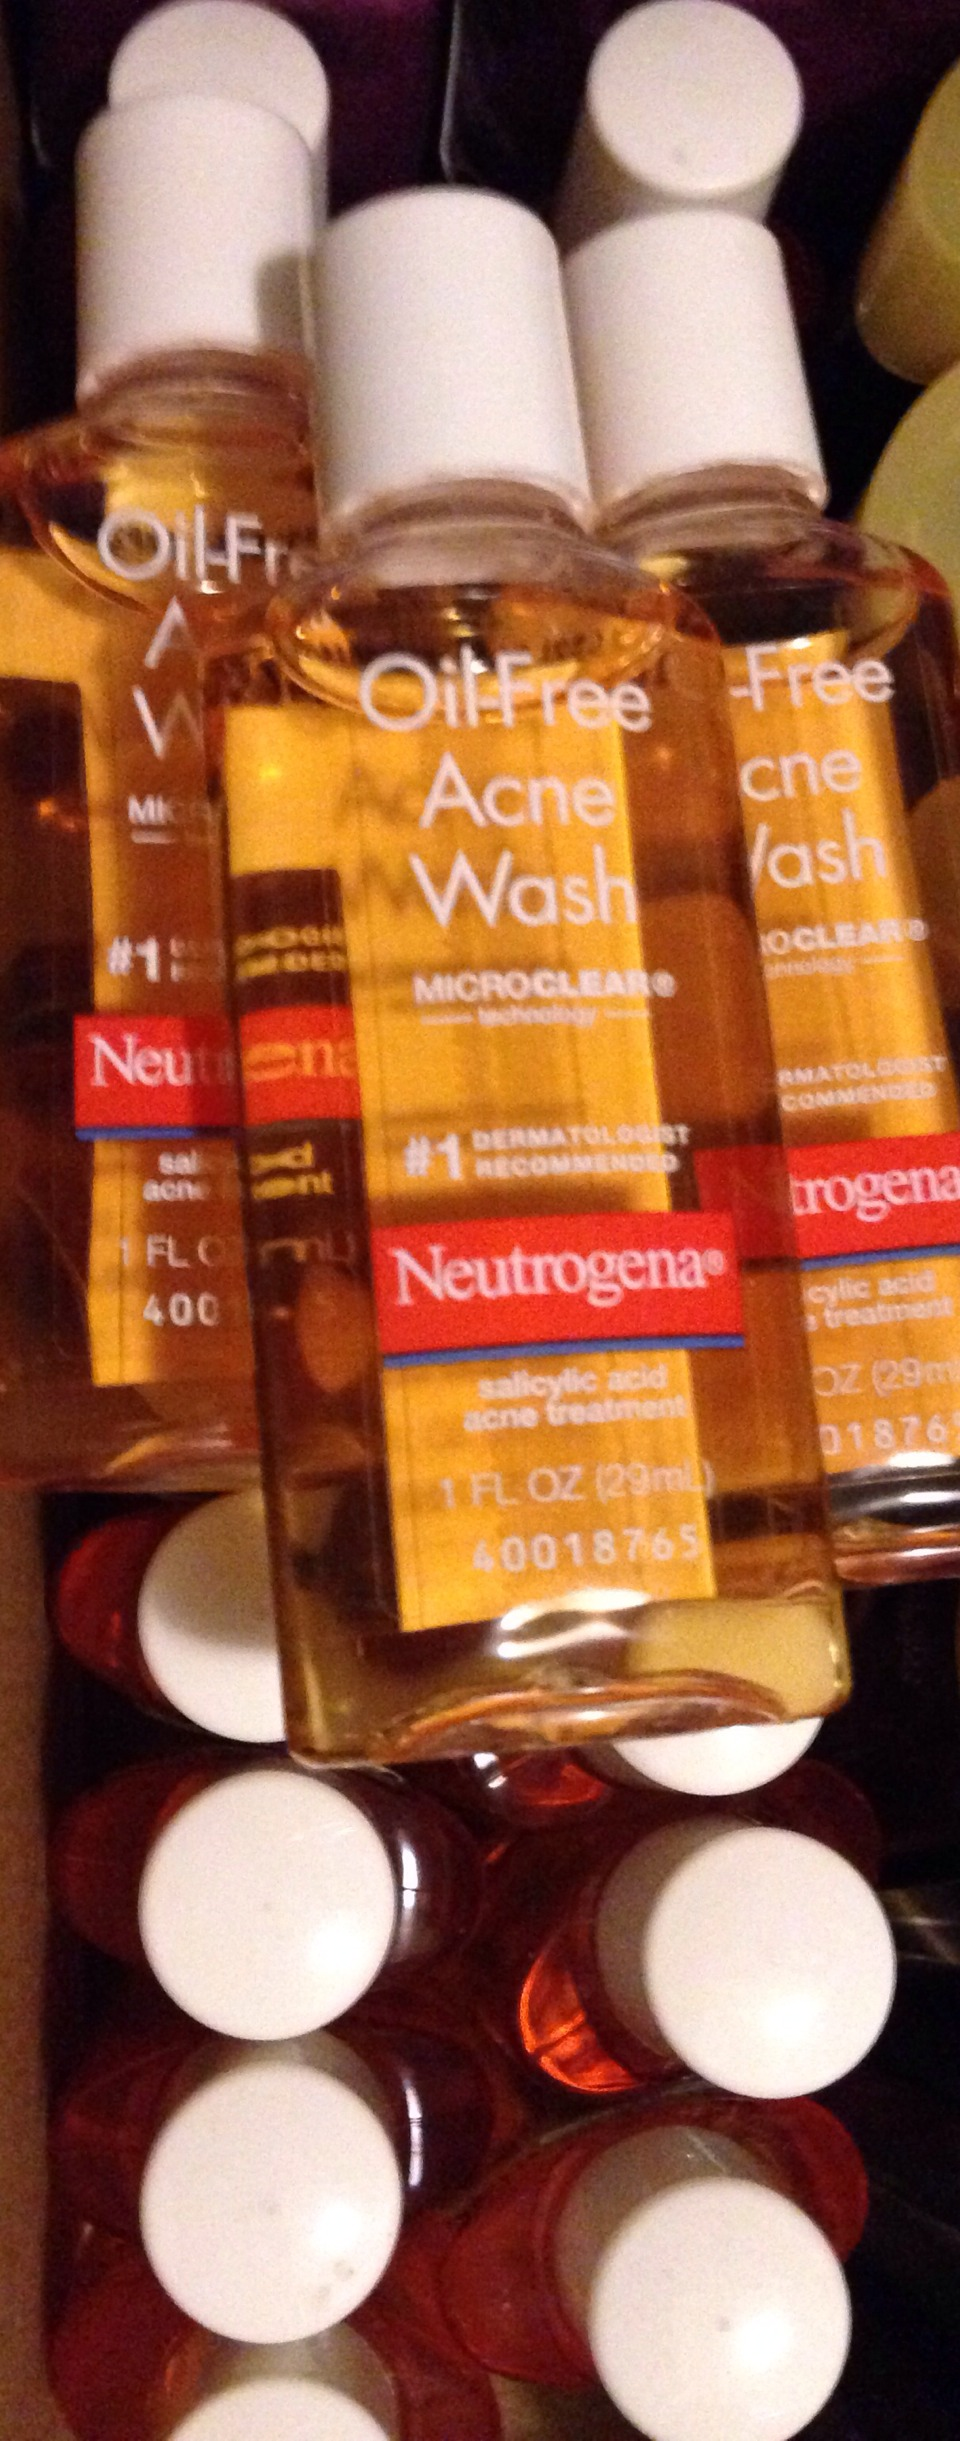 Neutrogena Acne Wash. These are what the travel size looks like.